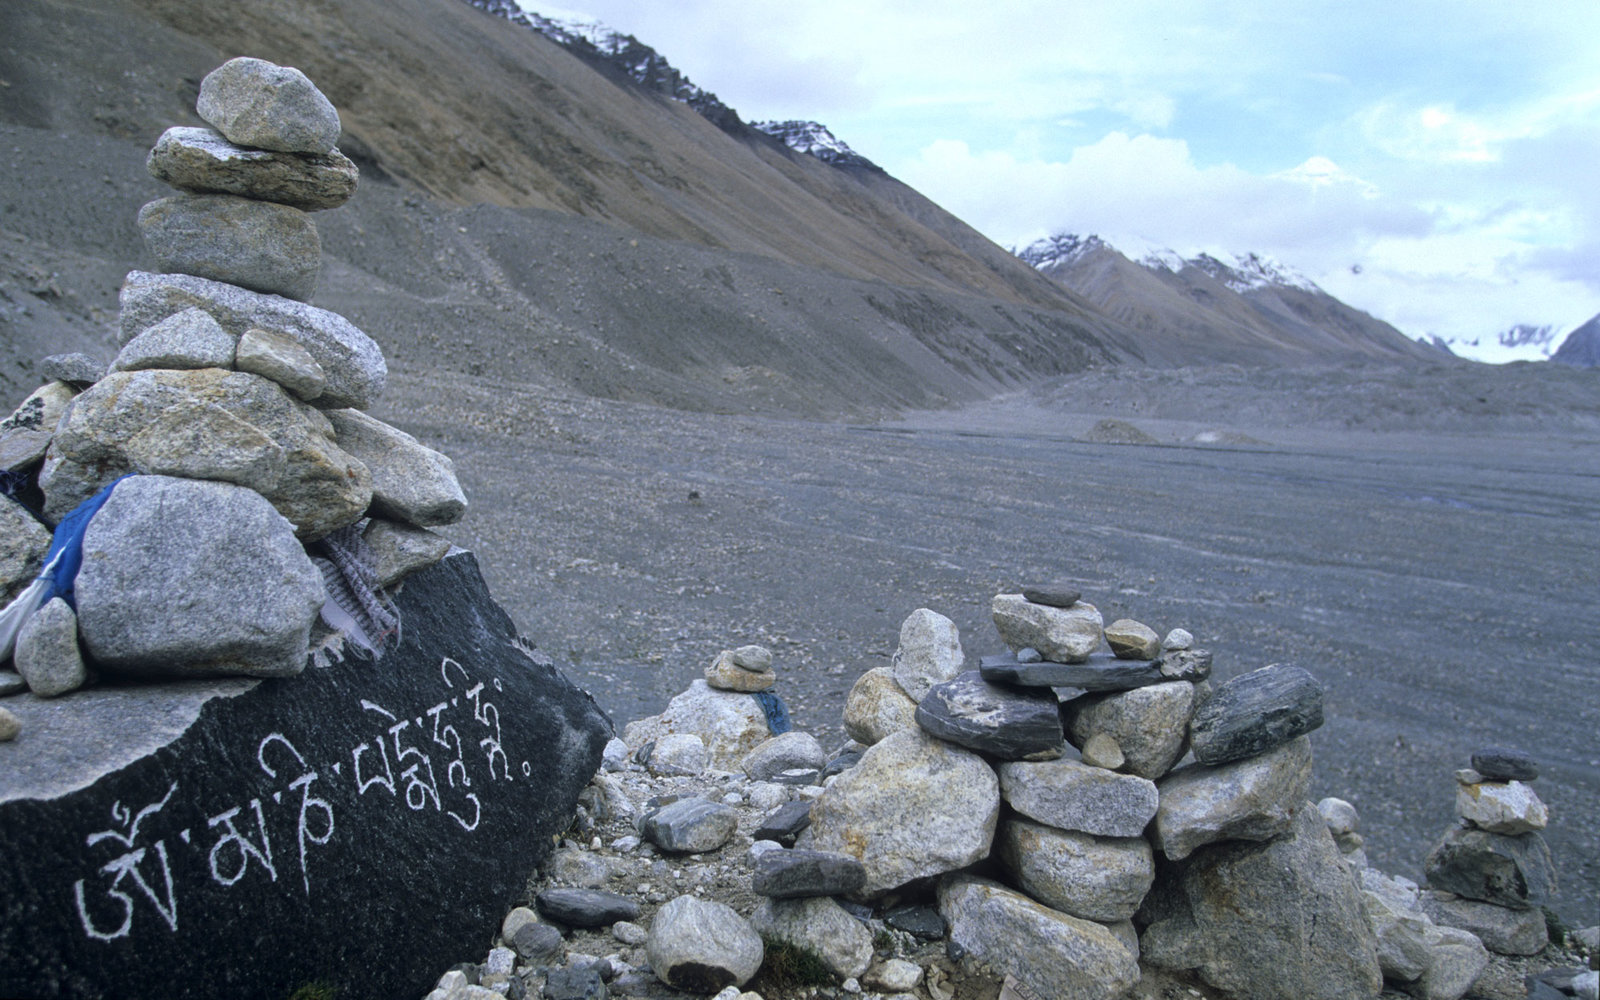 Mount Everest Base Camp Tibet in China